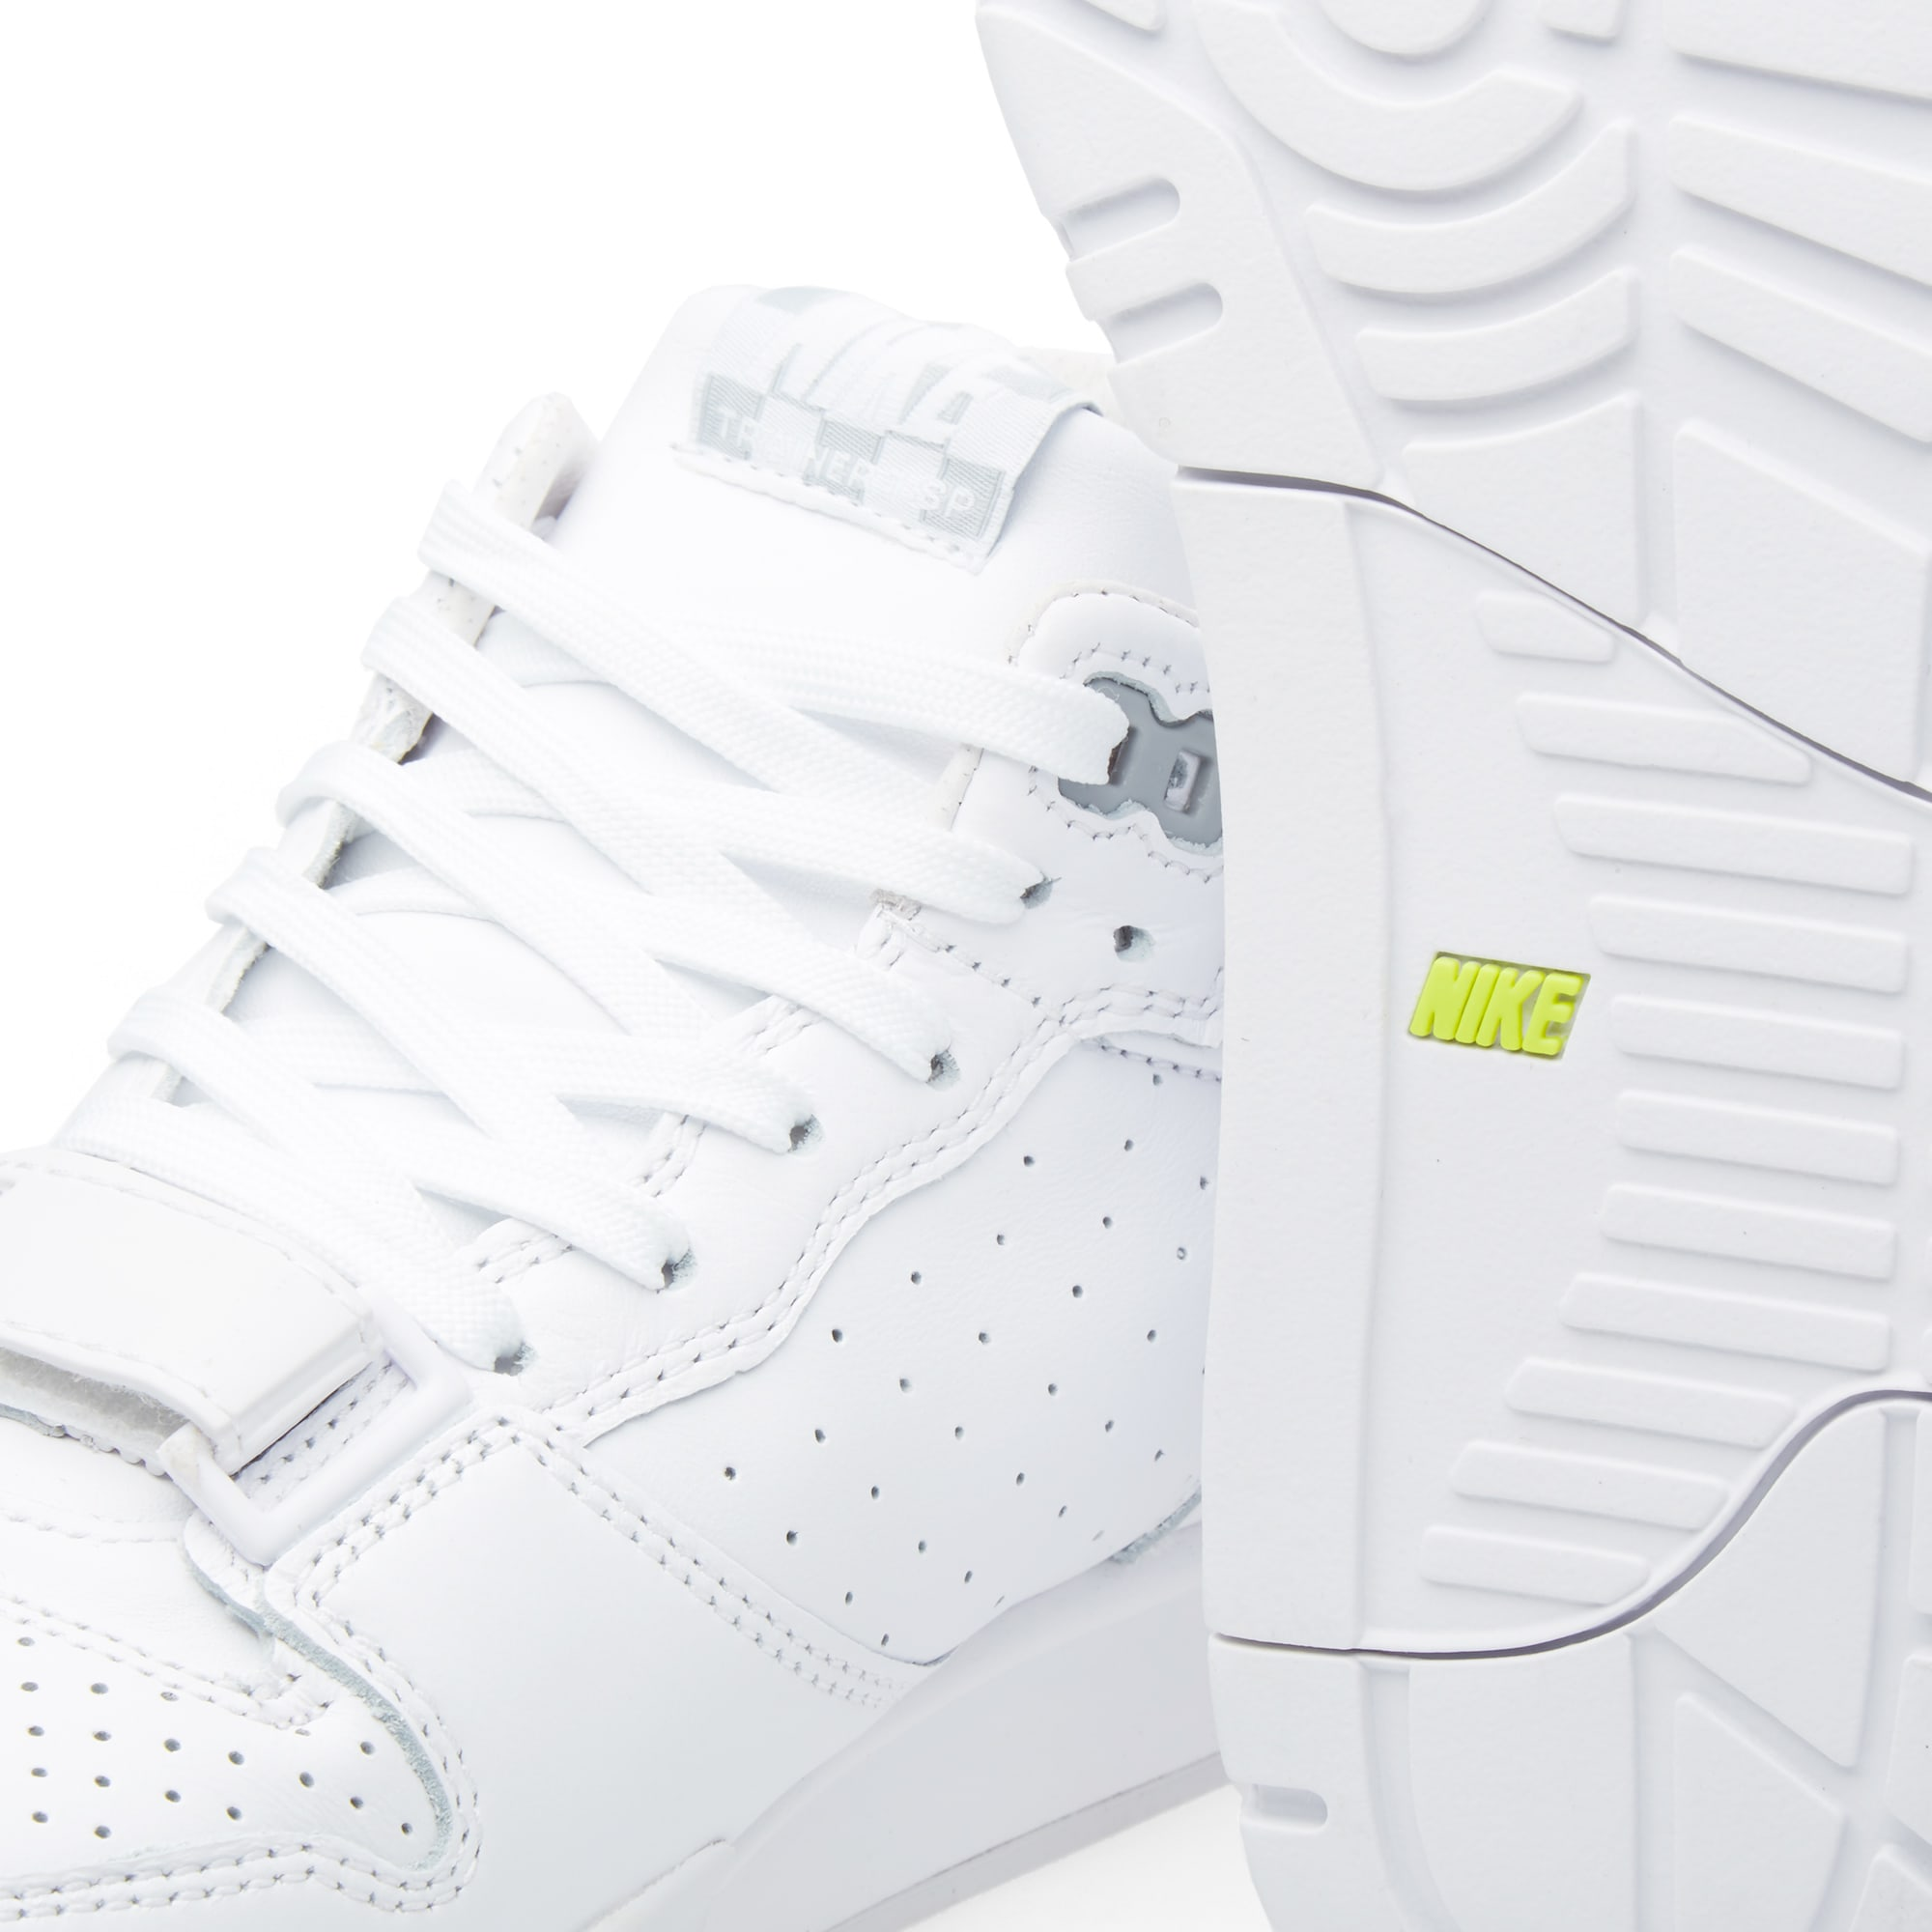 separation shoes e8552 1971f Nike x Fragment Design Air Trainer 1 Mid SP White   Wolf Grey   END.